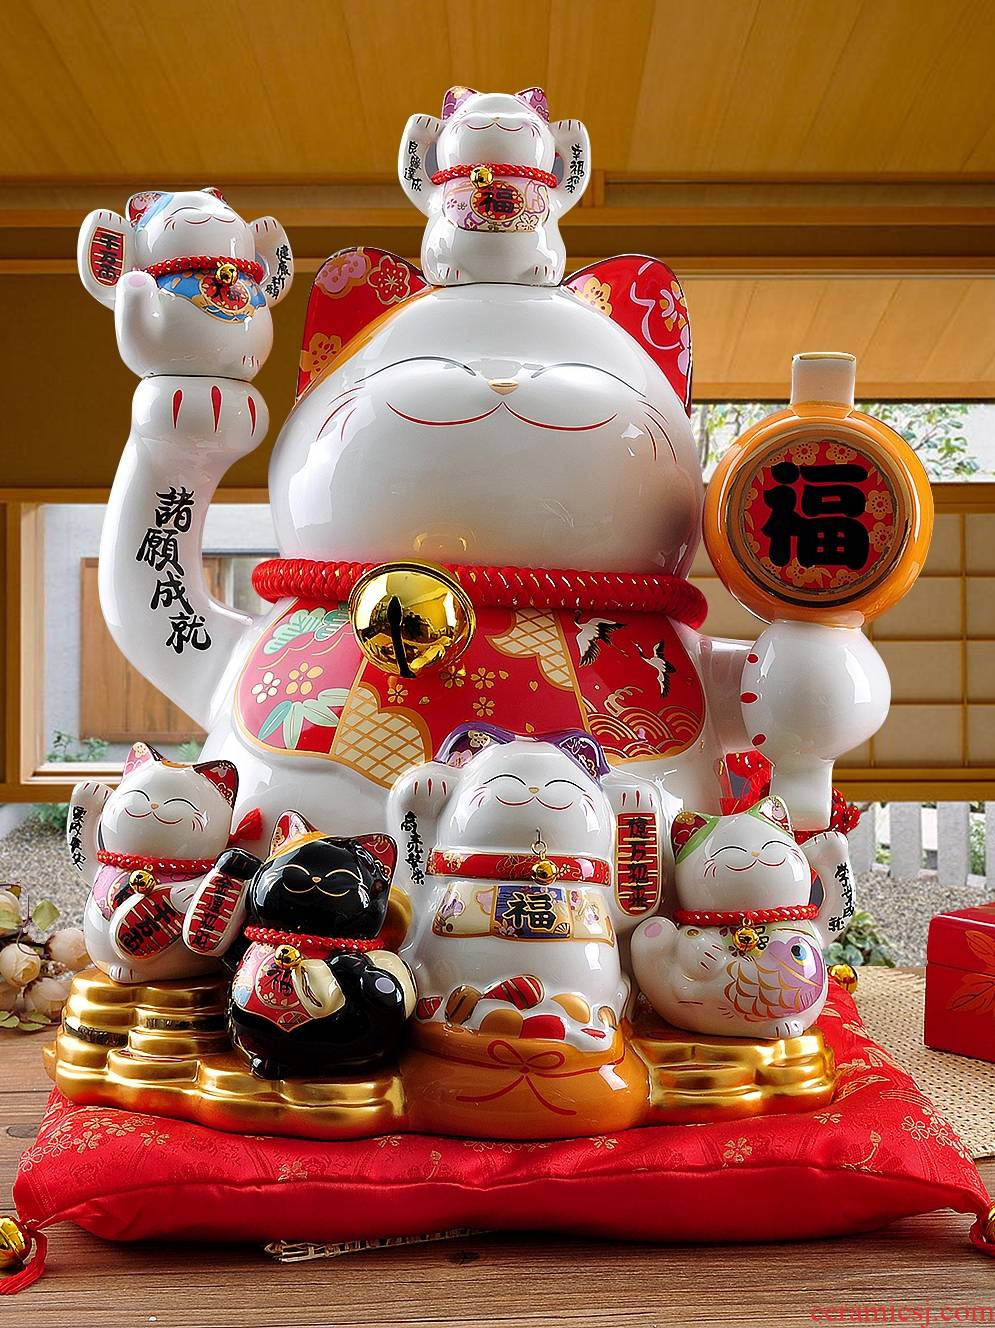 Stone workshop the achievement to extra large store treasure plutus cat ceramic furnishing articles opening gifts